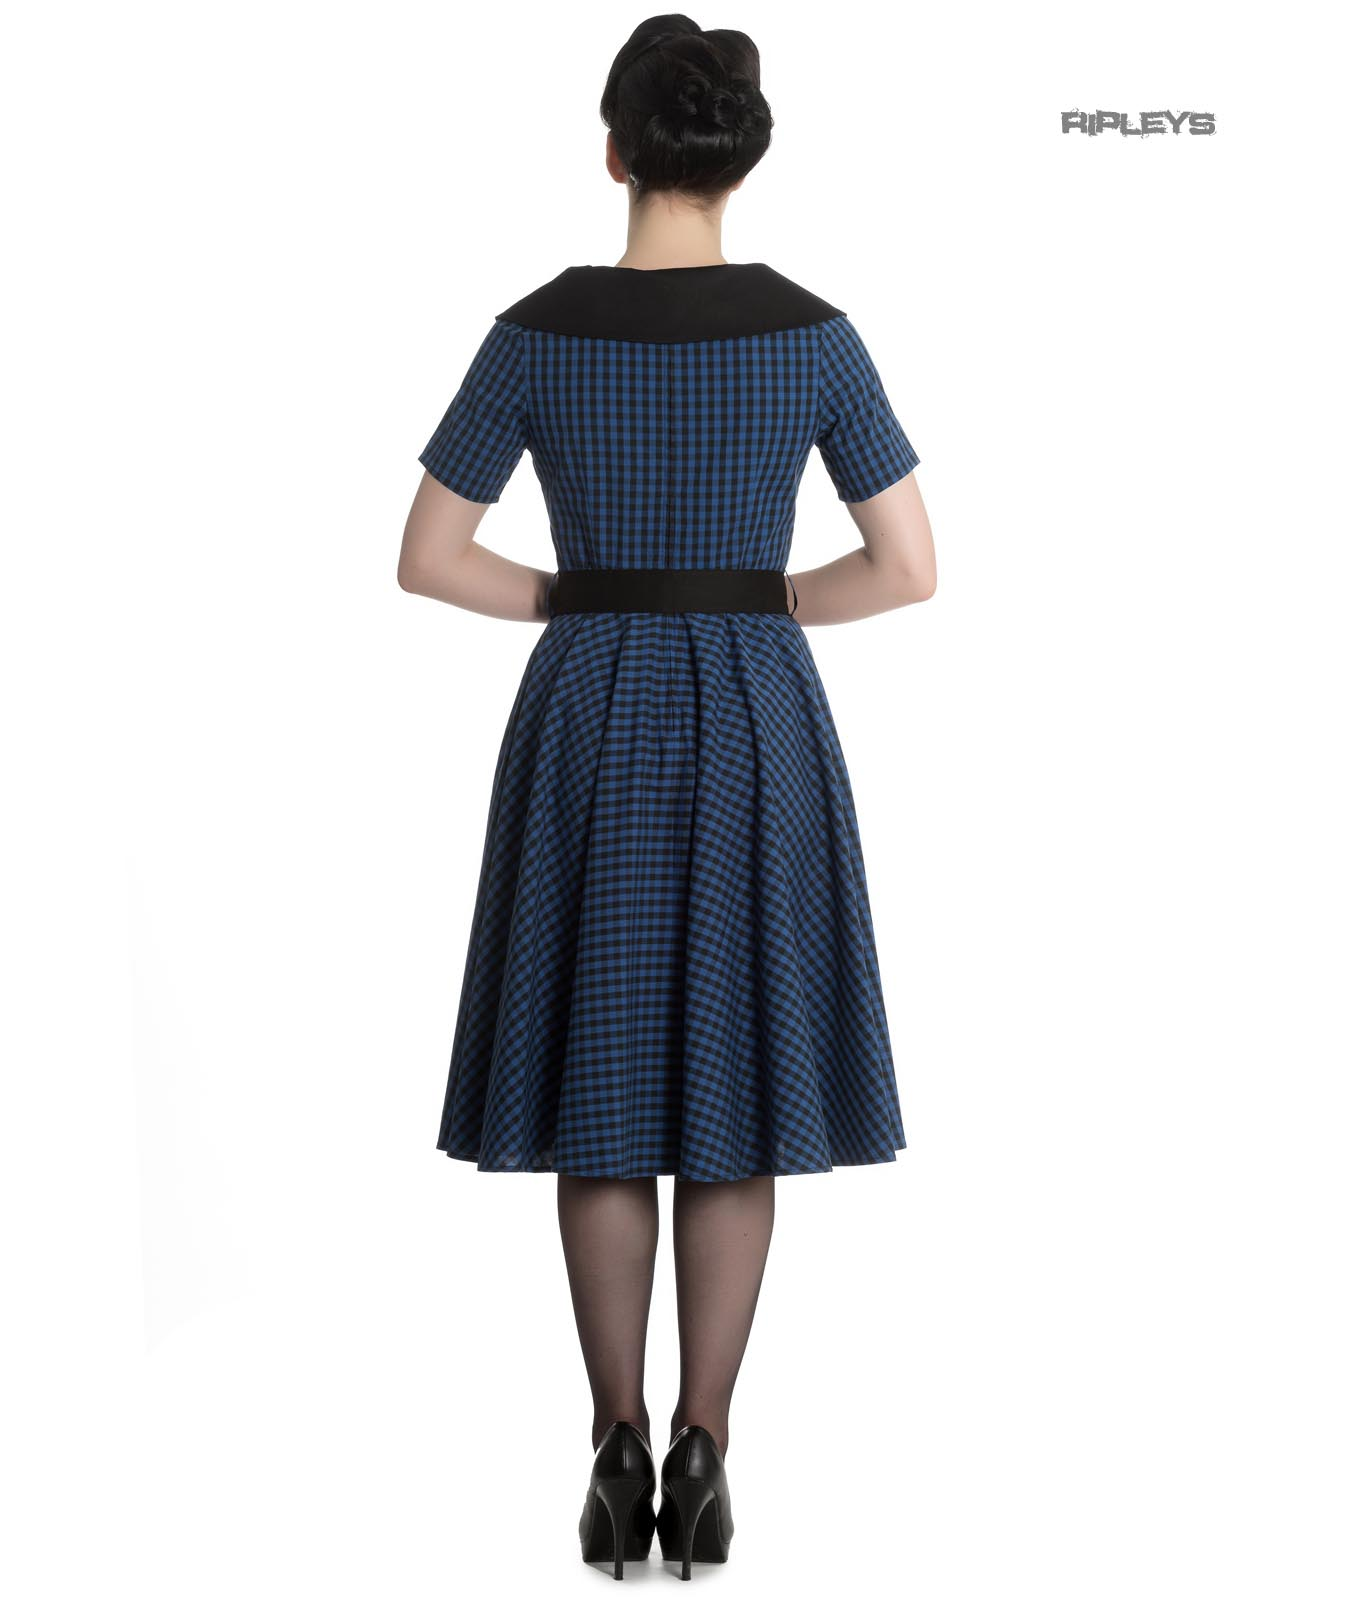 Hell-Bunny-40s-50s-Pin-Up-Swing-Dress-Black-Navy-BRIDGET-Gingham-All-Sizes thumbnail 4